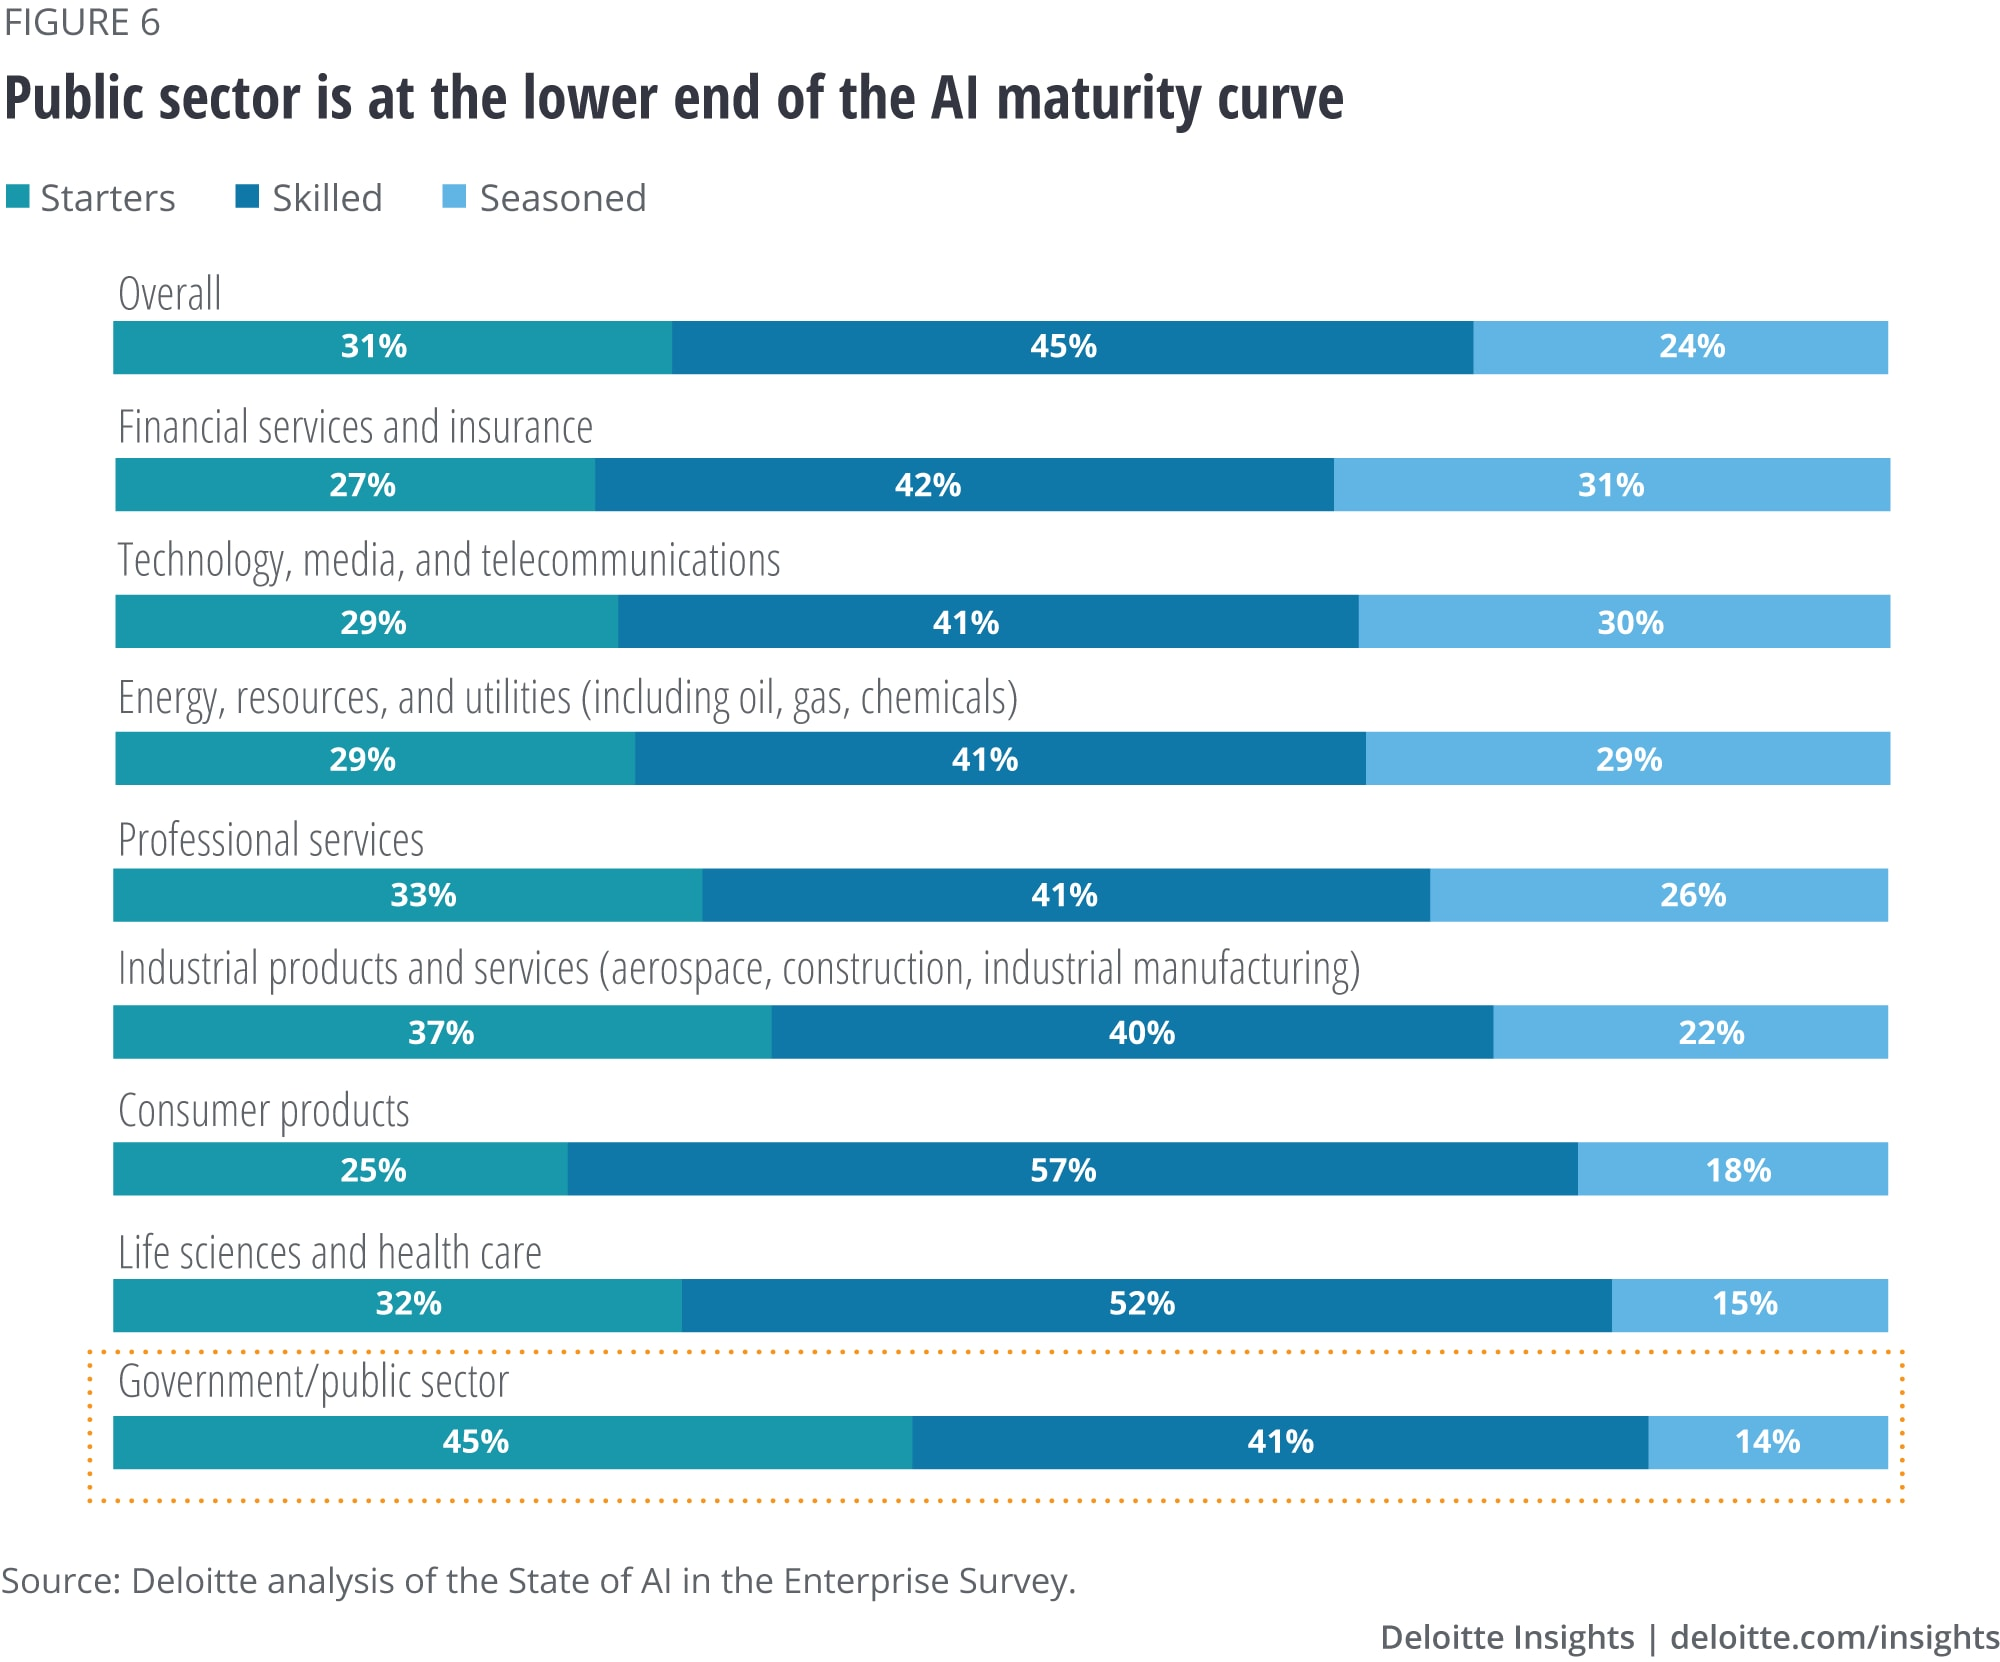 Public sector is at the lower end of the AI maturity curve